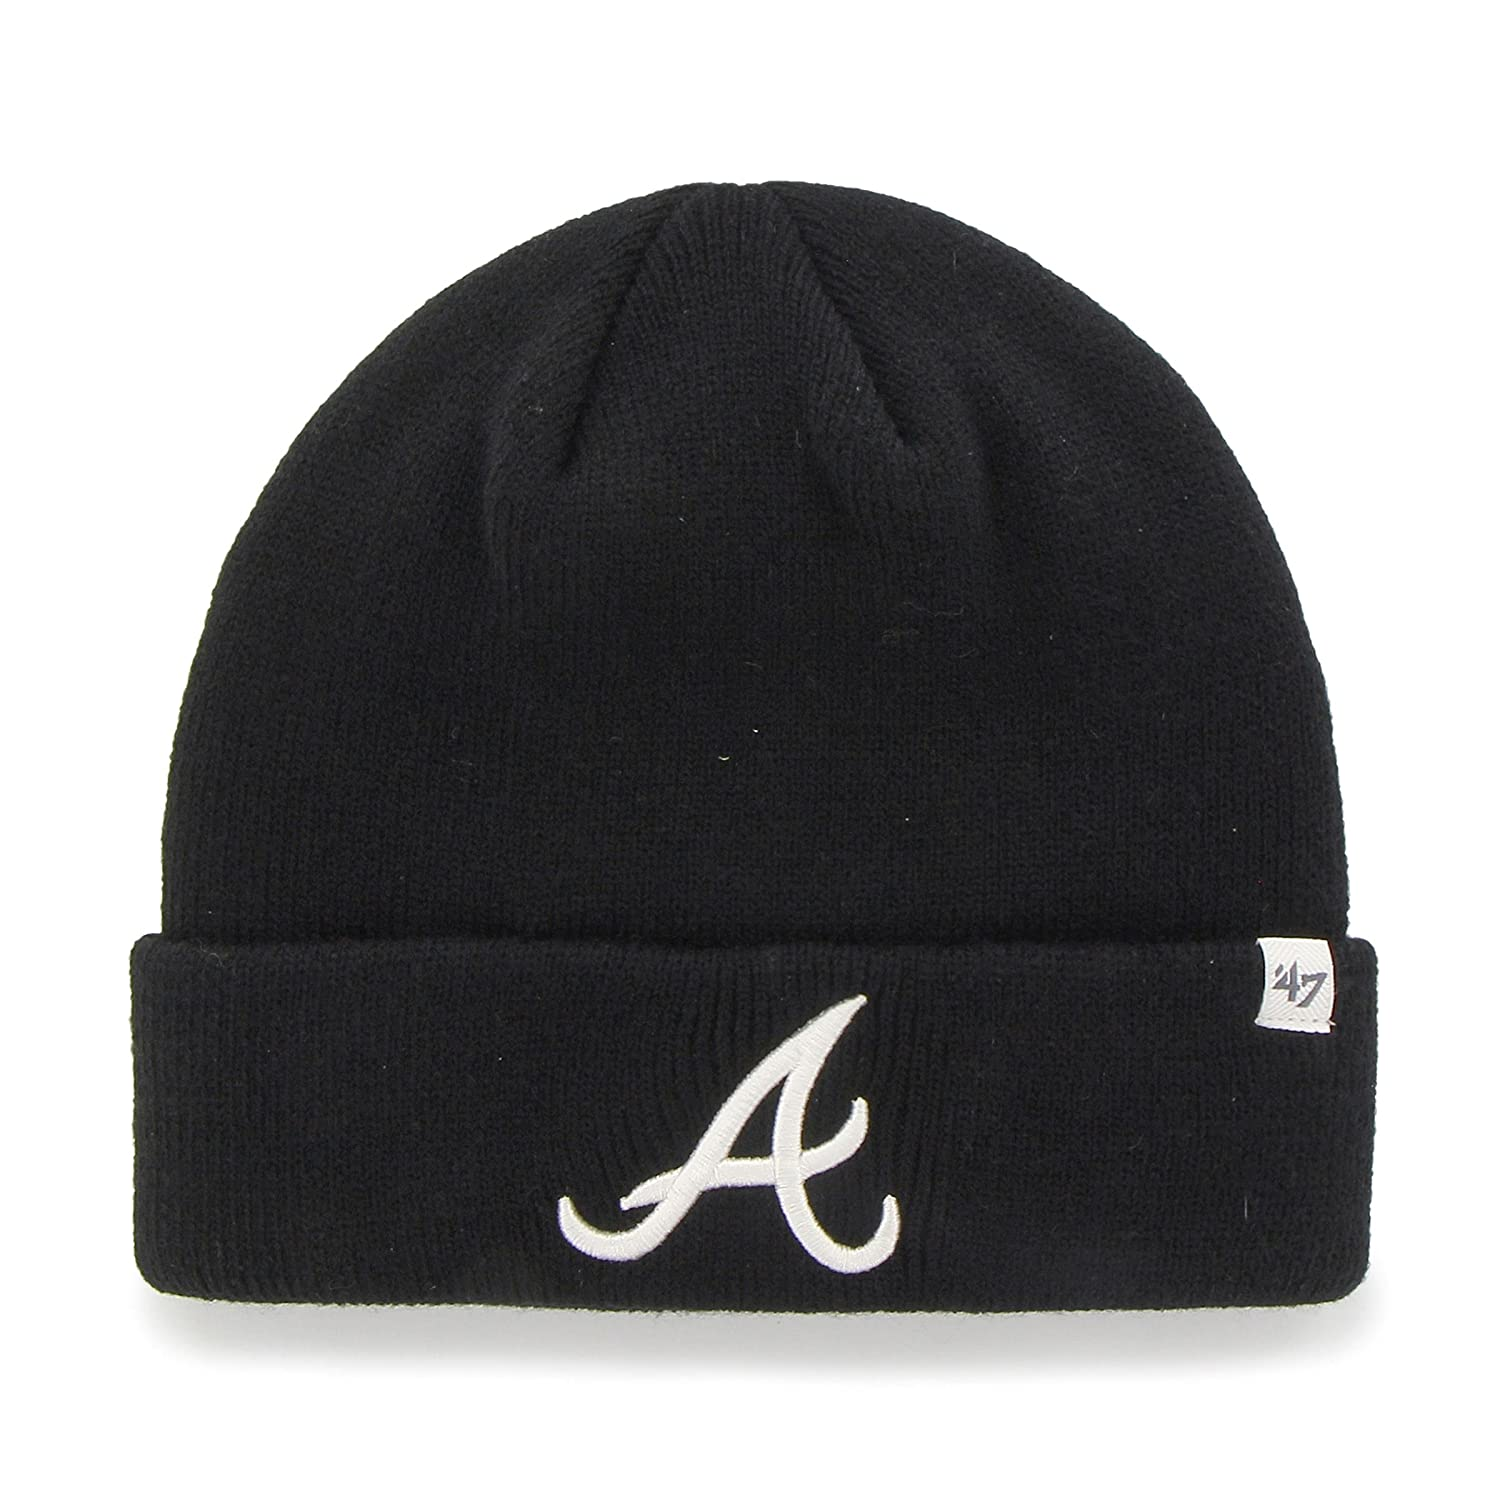 ... coupon code amazon anaheim angels of los angeles red beanie hat mlb  cuffed baseball knit cap 17f33e440